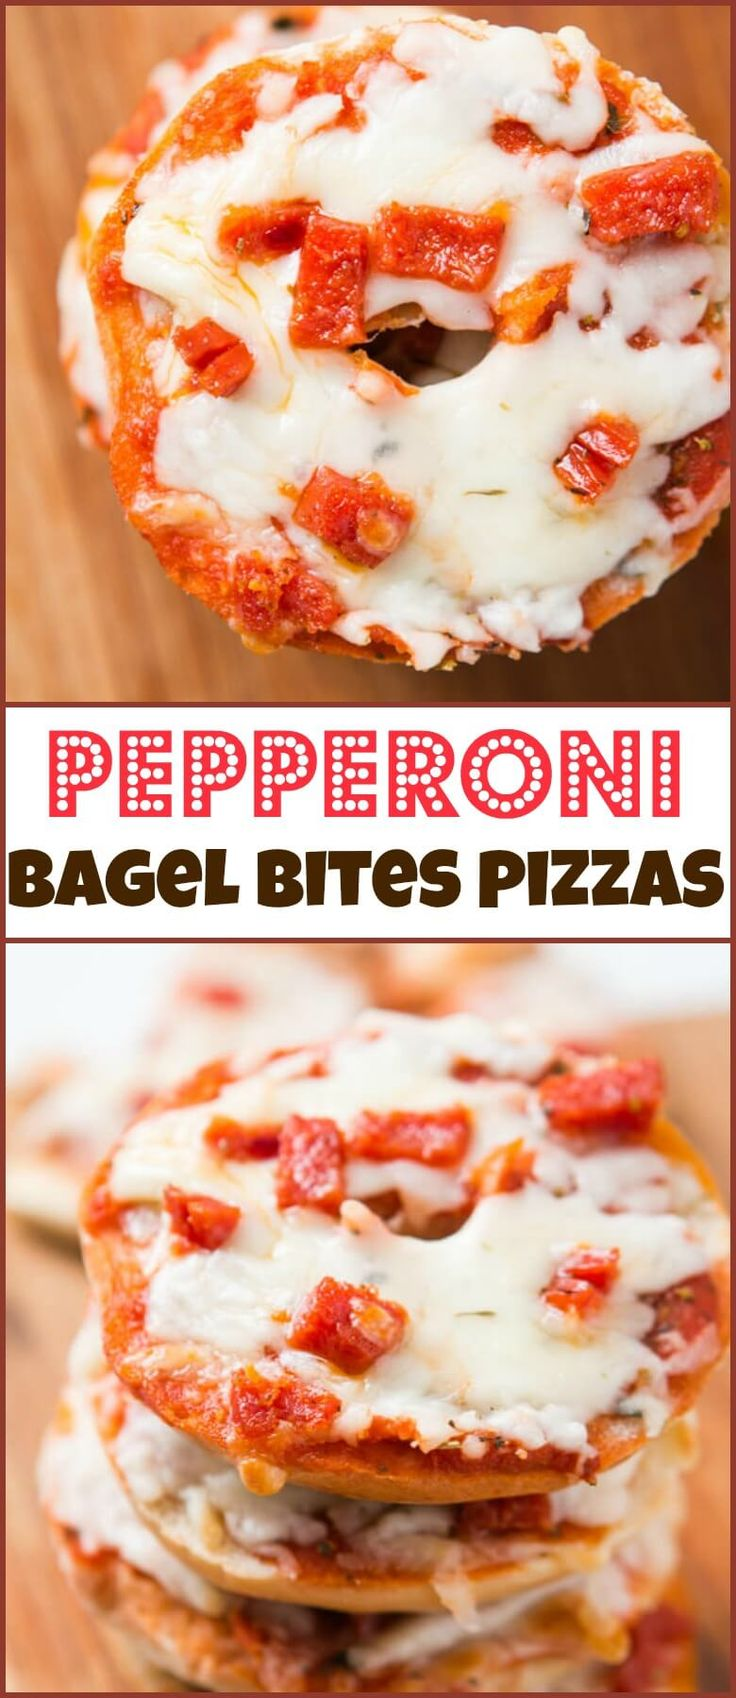 Pepperoni Bagel Bites Pizzas via @ohsweetbasil